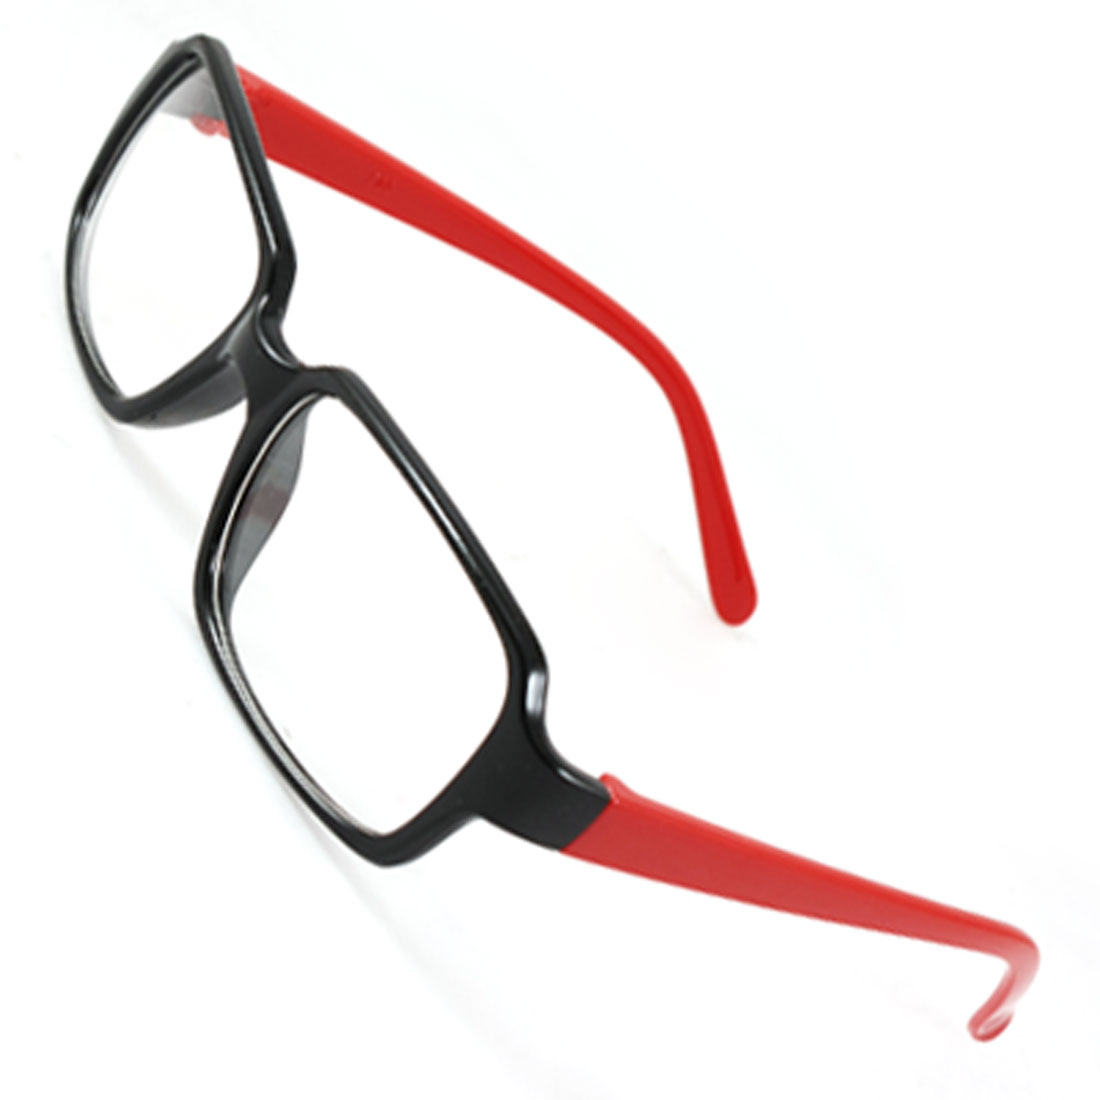 Unisex Black Plastic Rectangle Frame Red Slim Arms Full Rim Plano Glasses Spectacles